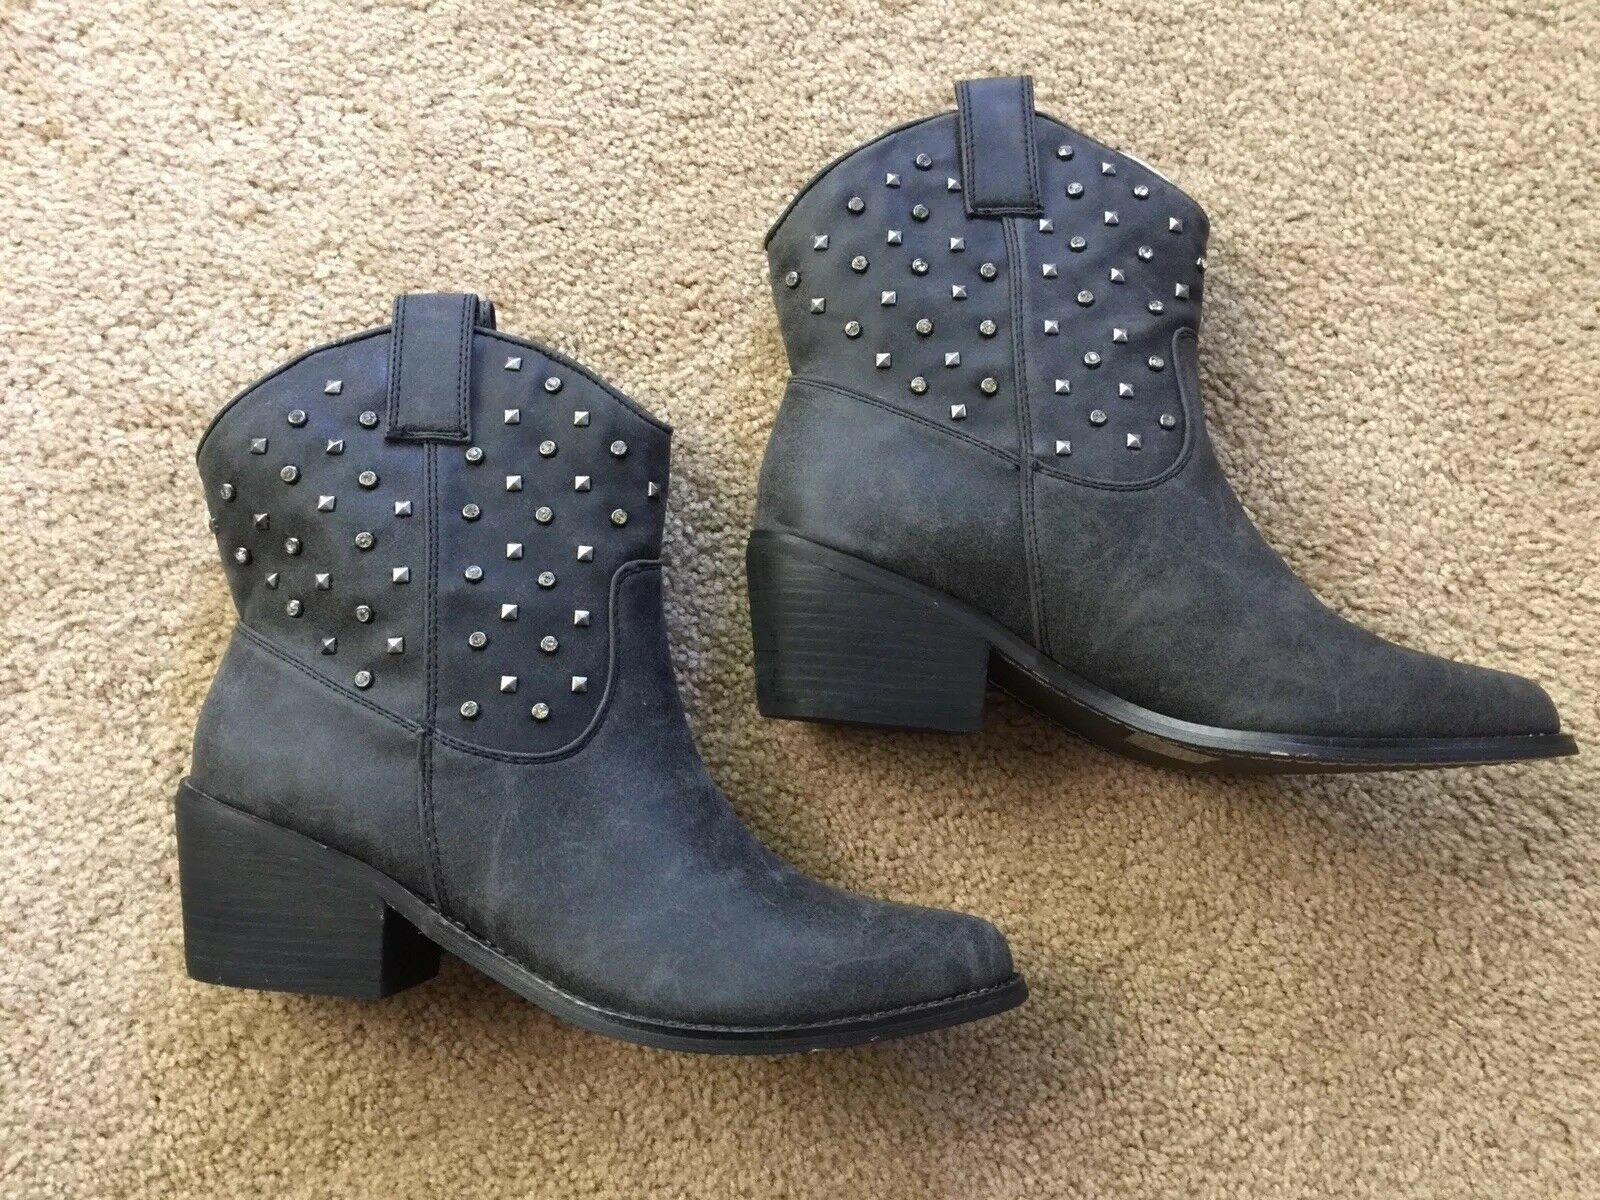 New woman's short bling cowboy boots size 8.5